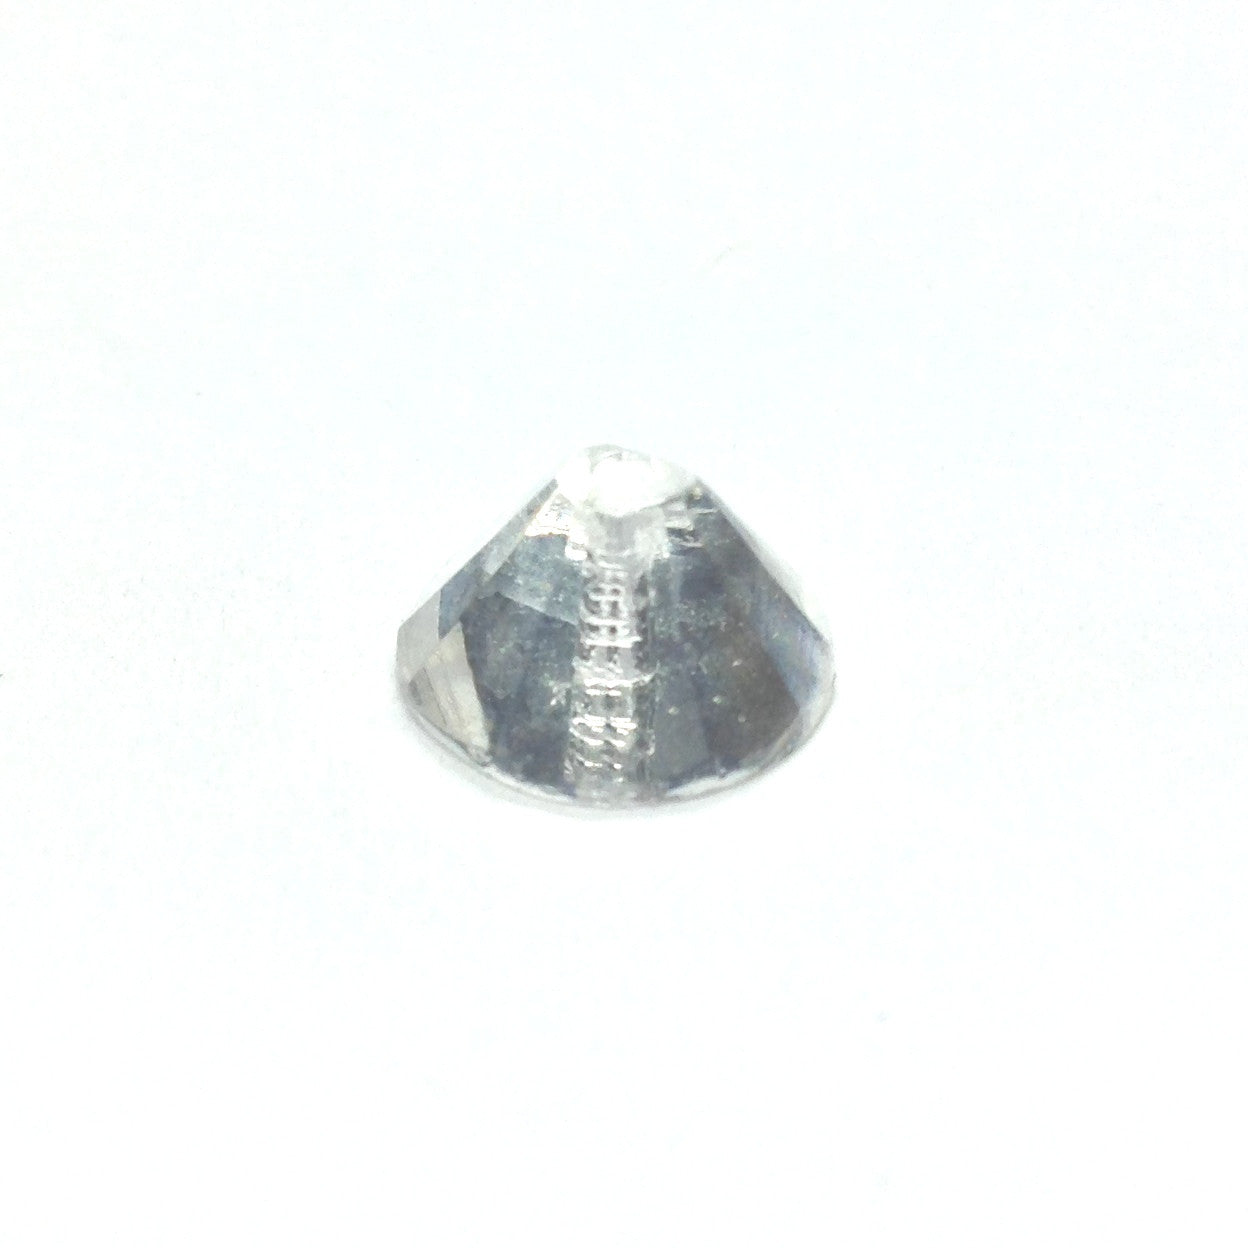 10MM Crystal Faceted Pyramid Bead (72 pieces)